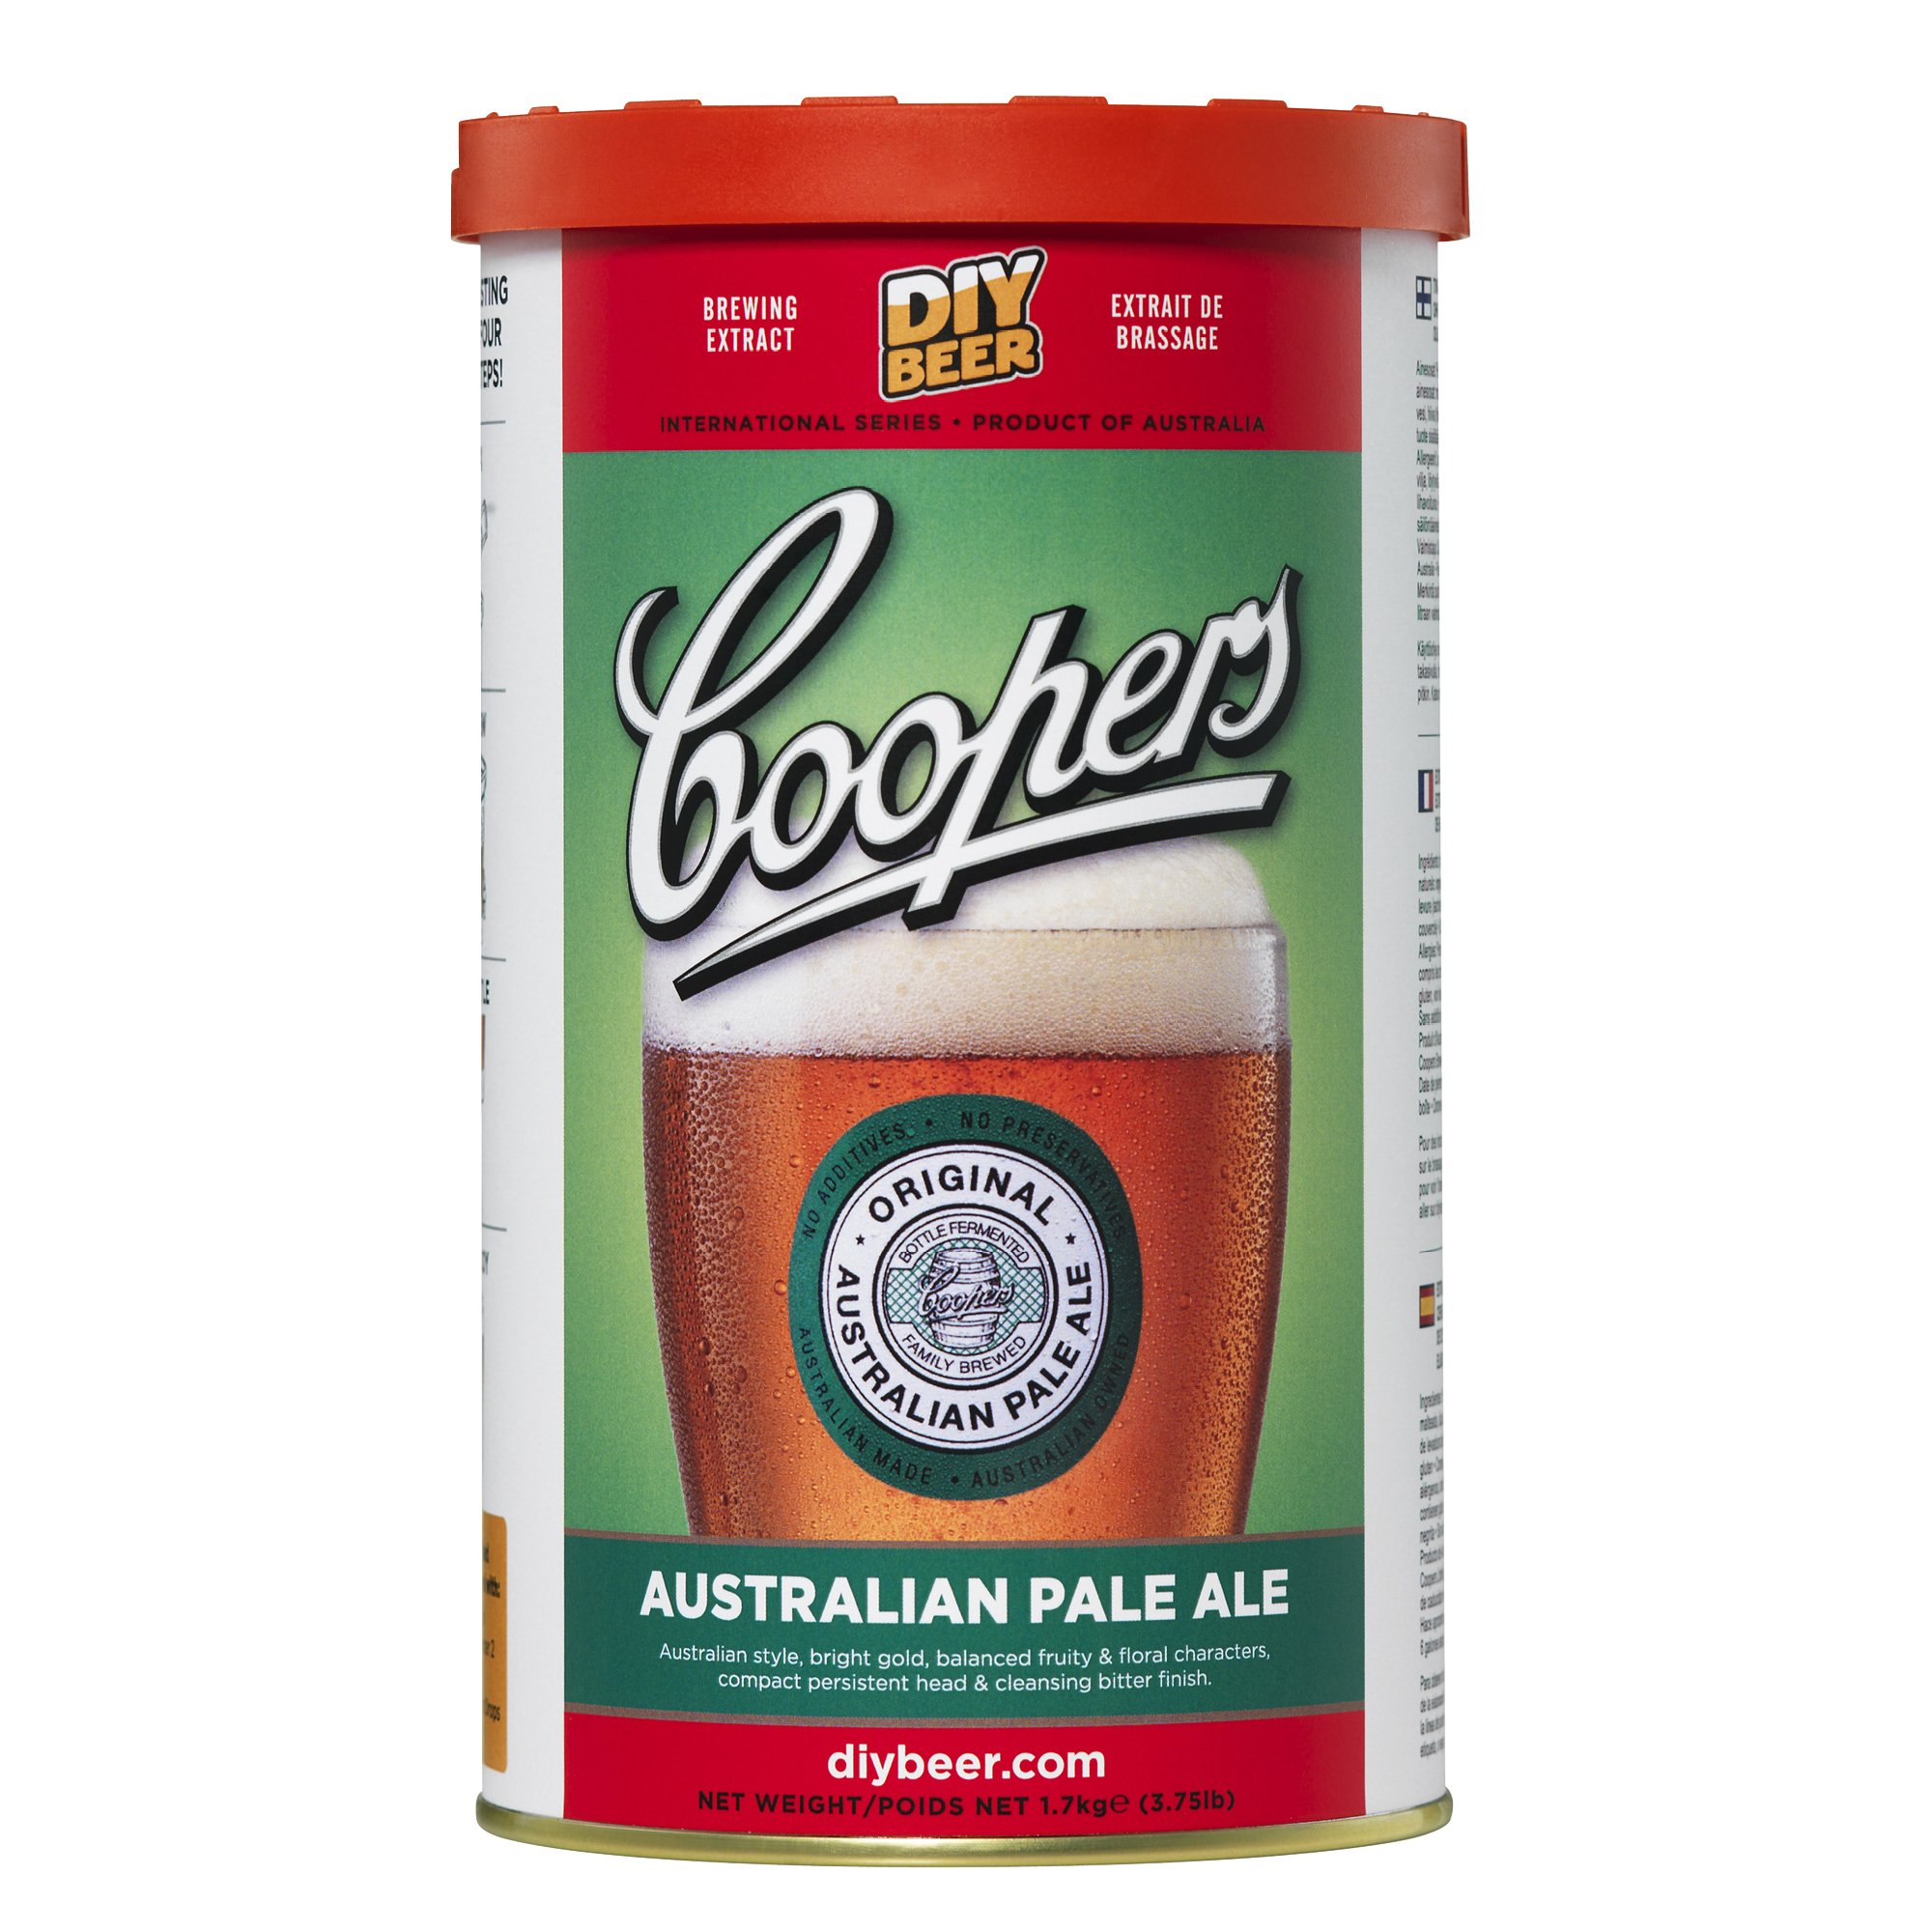 Coopers DIY Beer Australian Pale Ale Homebrewing Craft Beer Brewing Extract